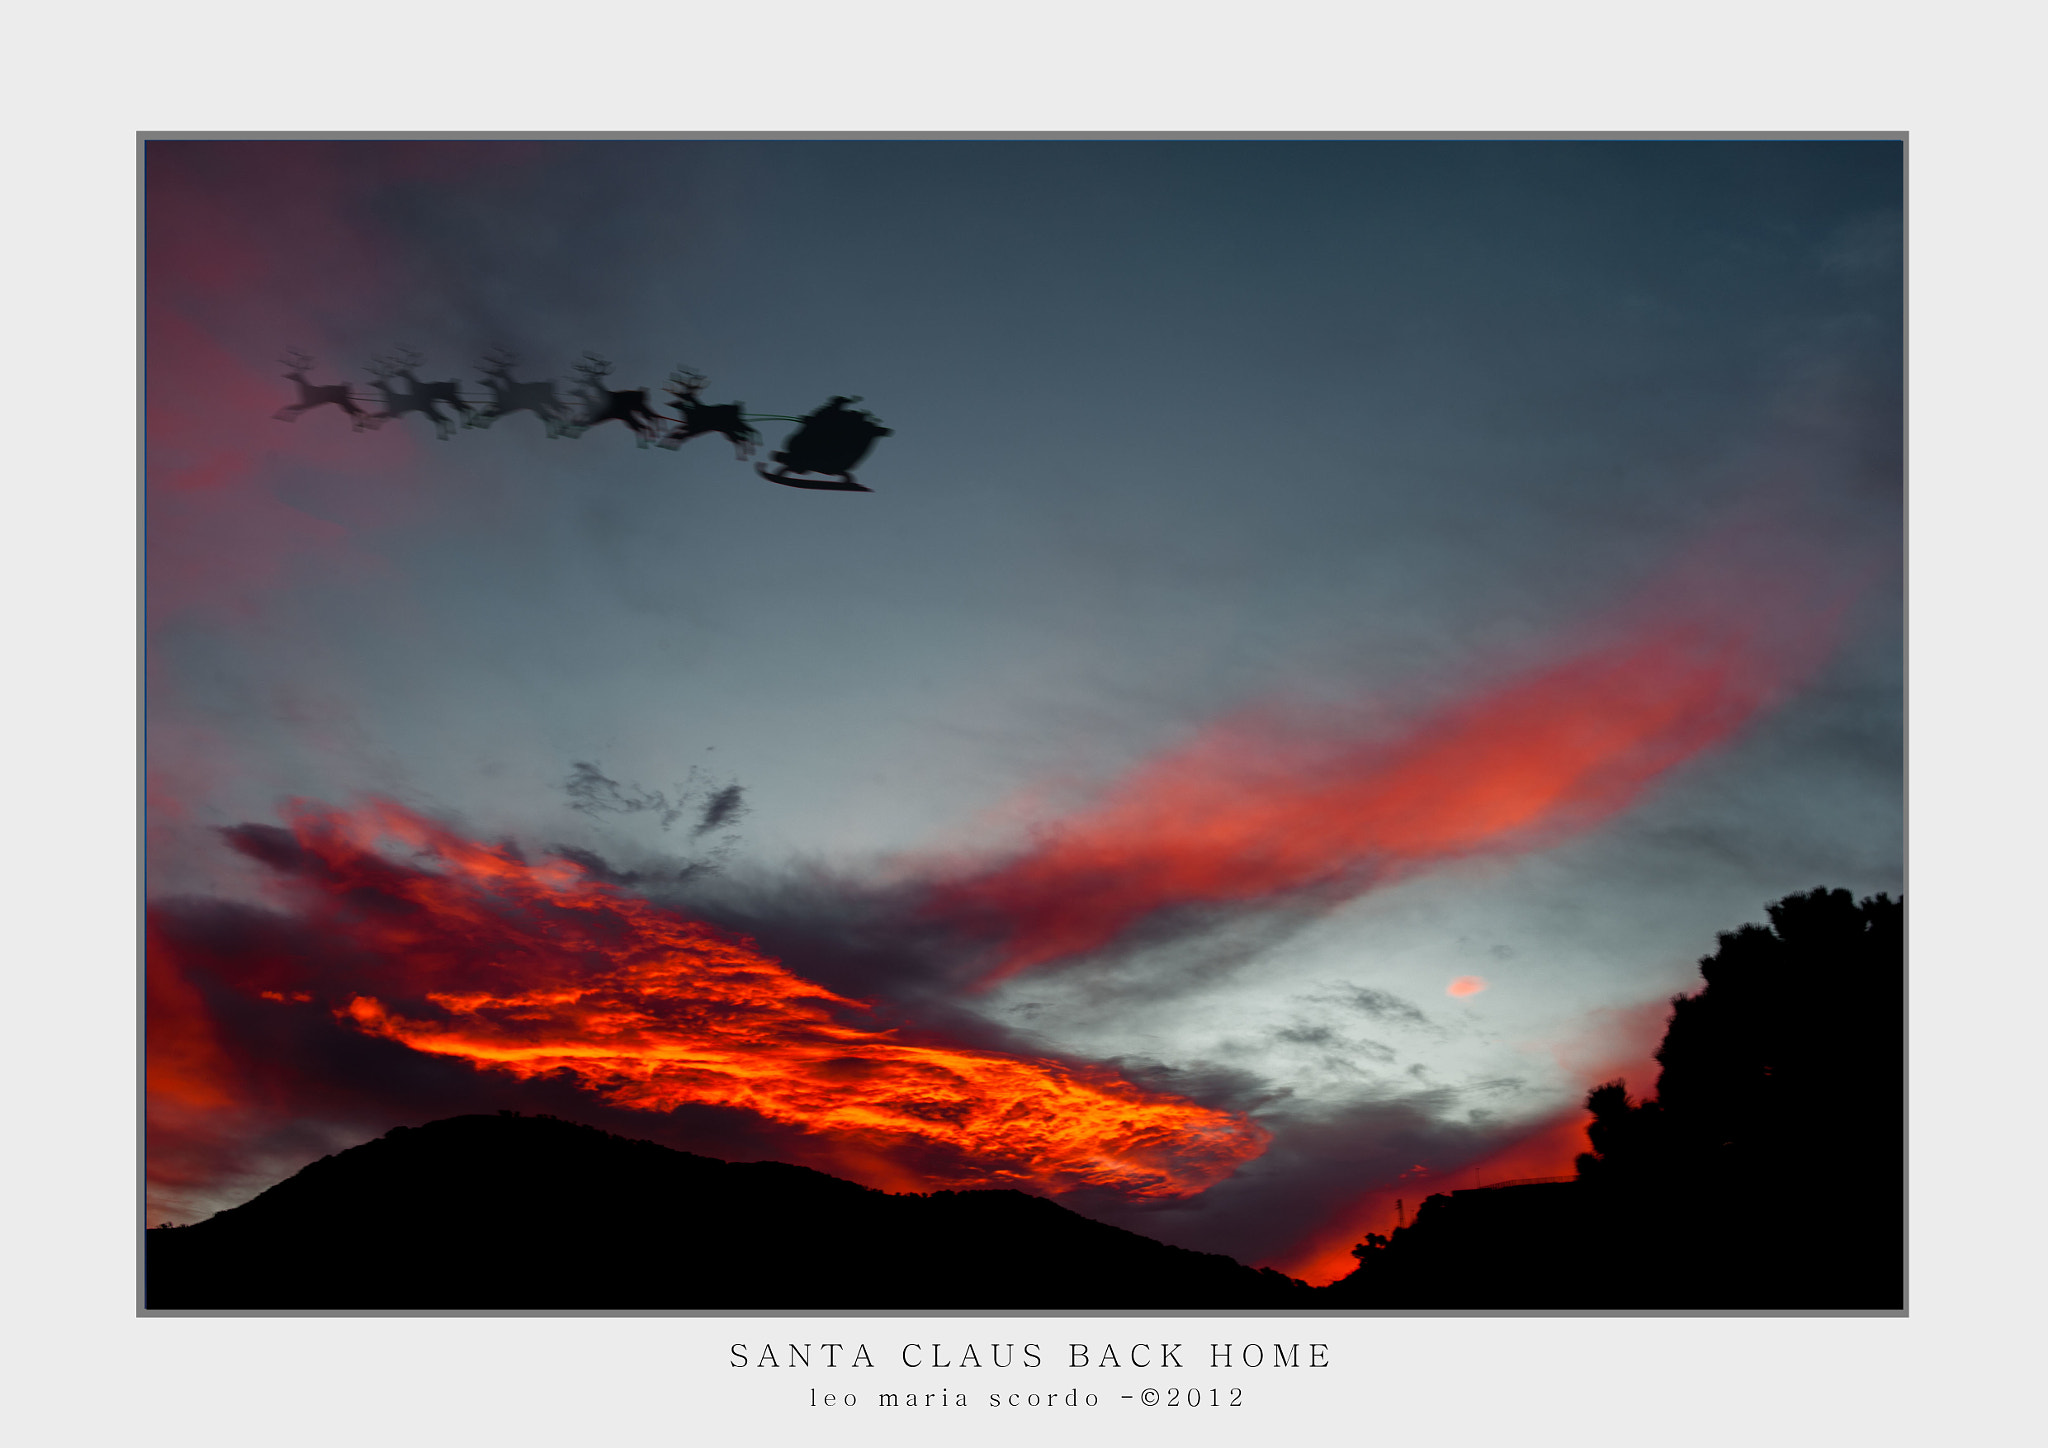 Photograph SANTA CLAUS BACK HOME by Leo Maria Scordo on 500px